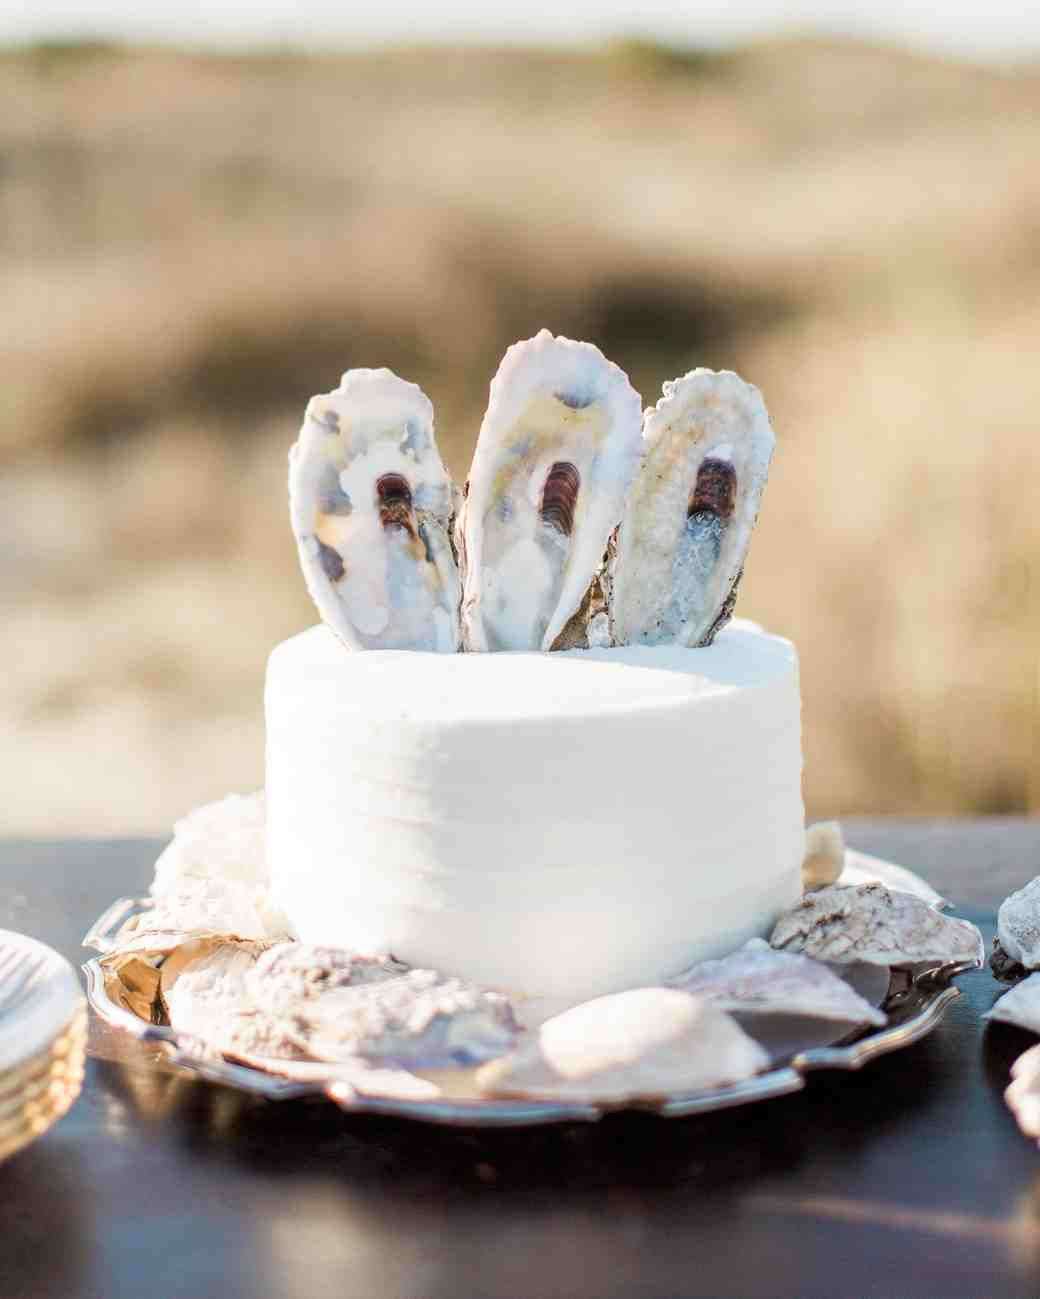 Single-Tiered Cake Decorate with Shells